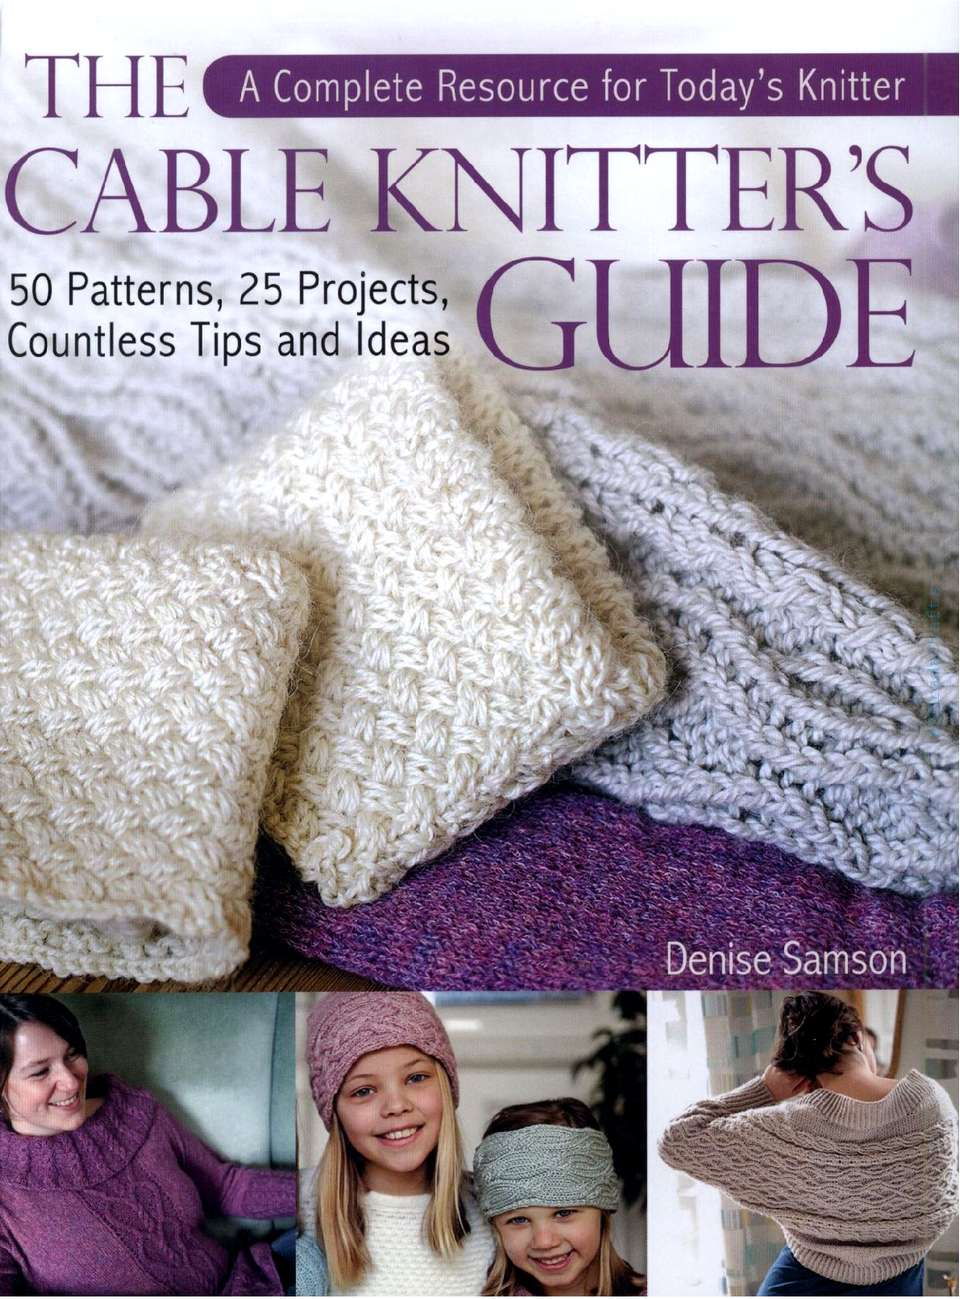 【转载】THE CABLE KNITTER'S GUIDE